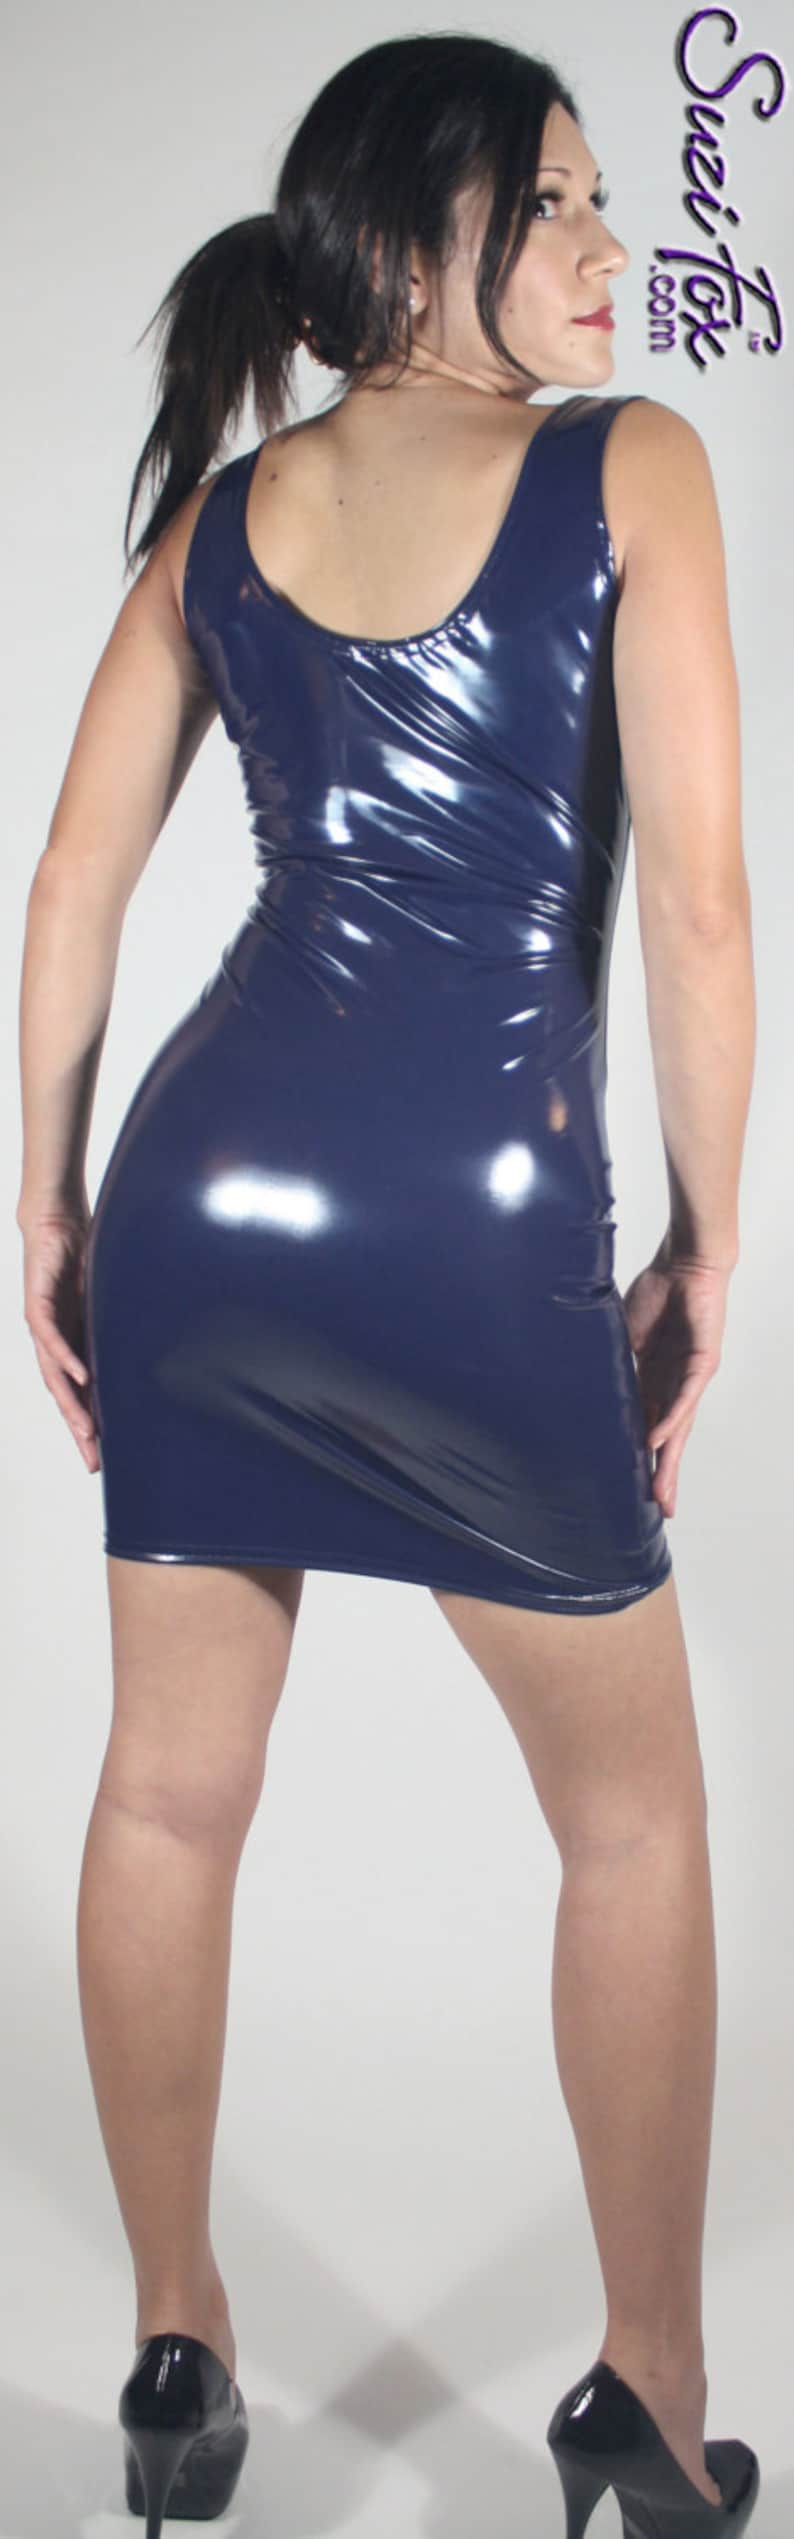 6ad60fc633e Tank style Mini Dress in Gloss Stretch Vinyl PVC by Suzi Fox